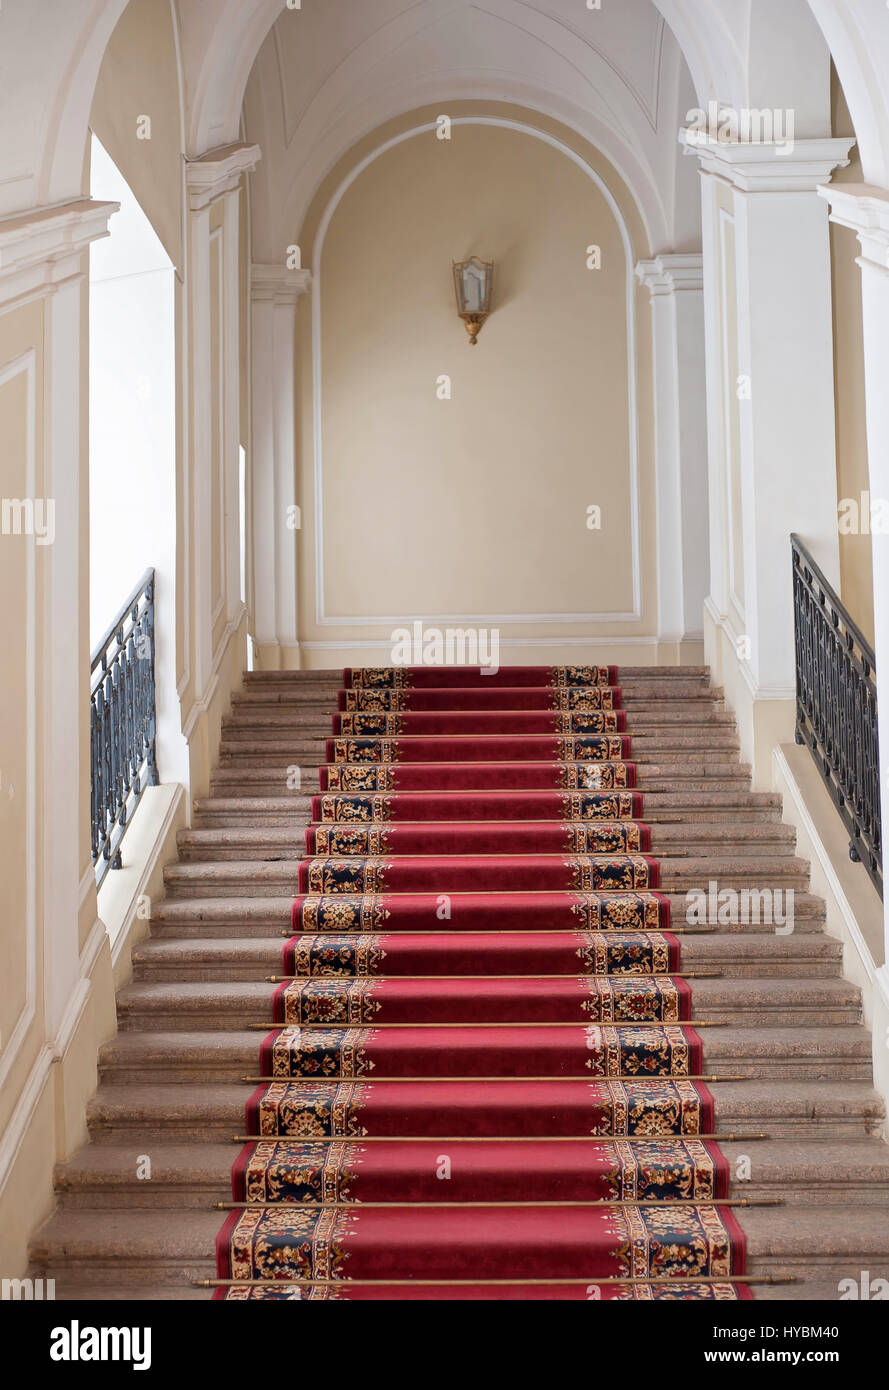 Royal Staircase Indoors With Red Carpet In Museum Stock